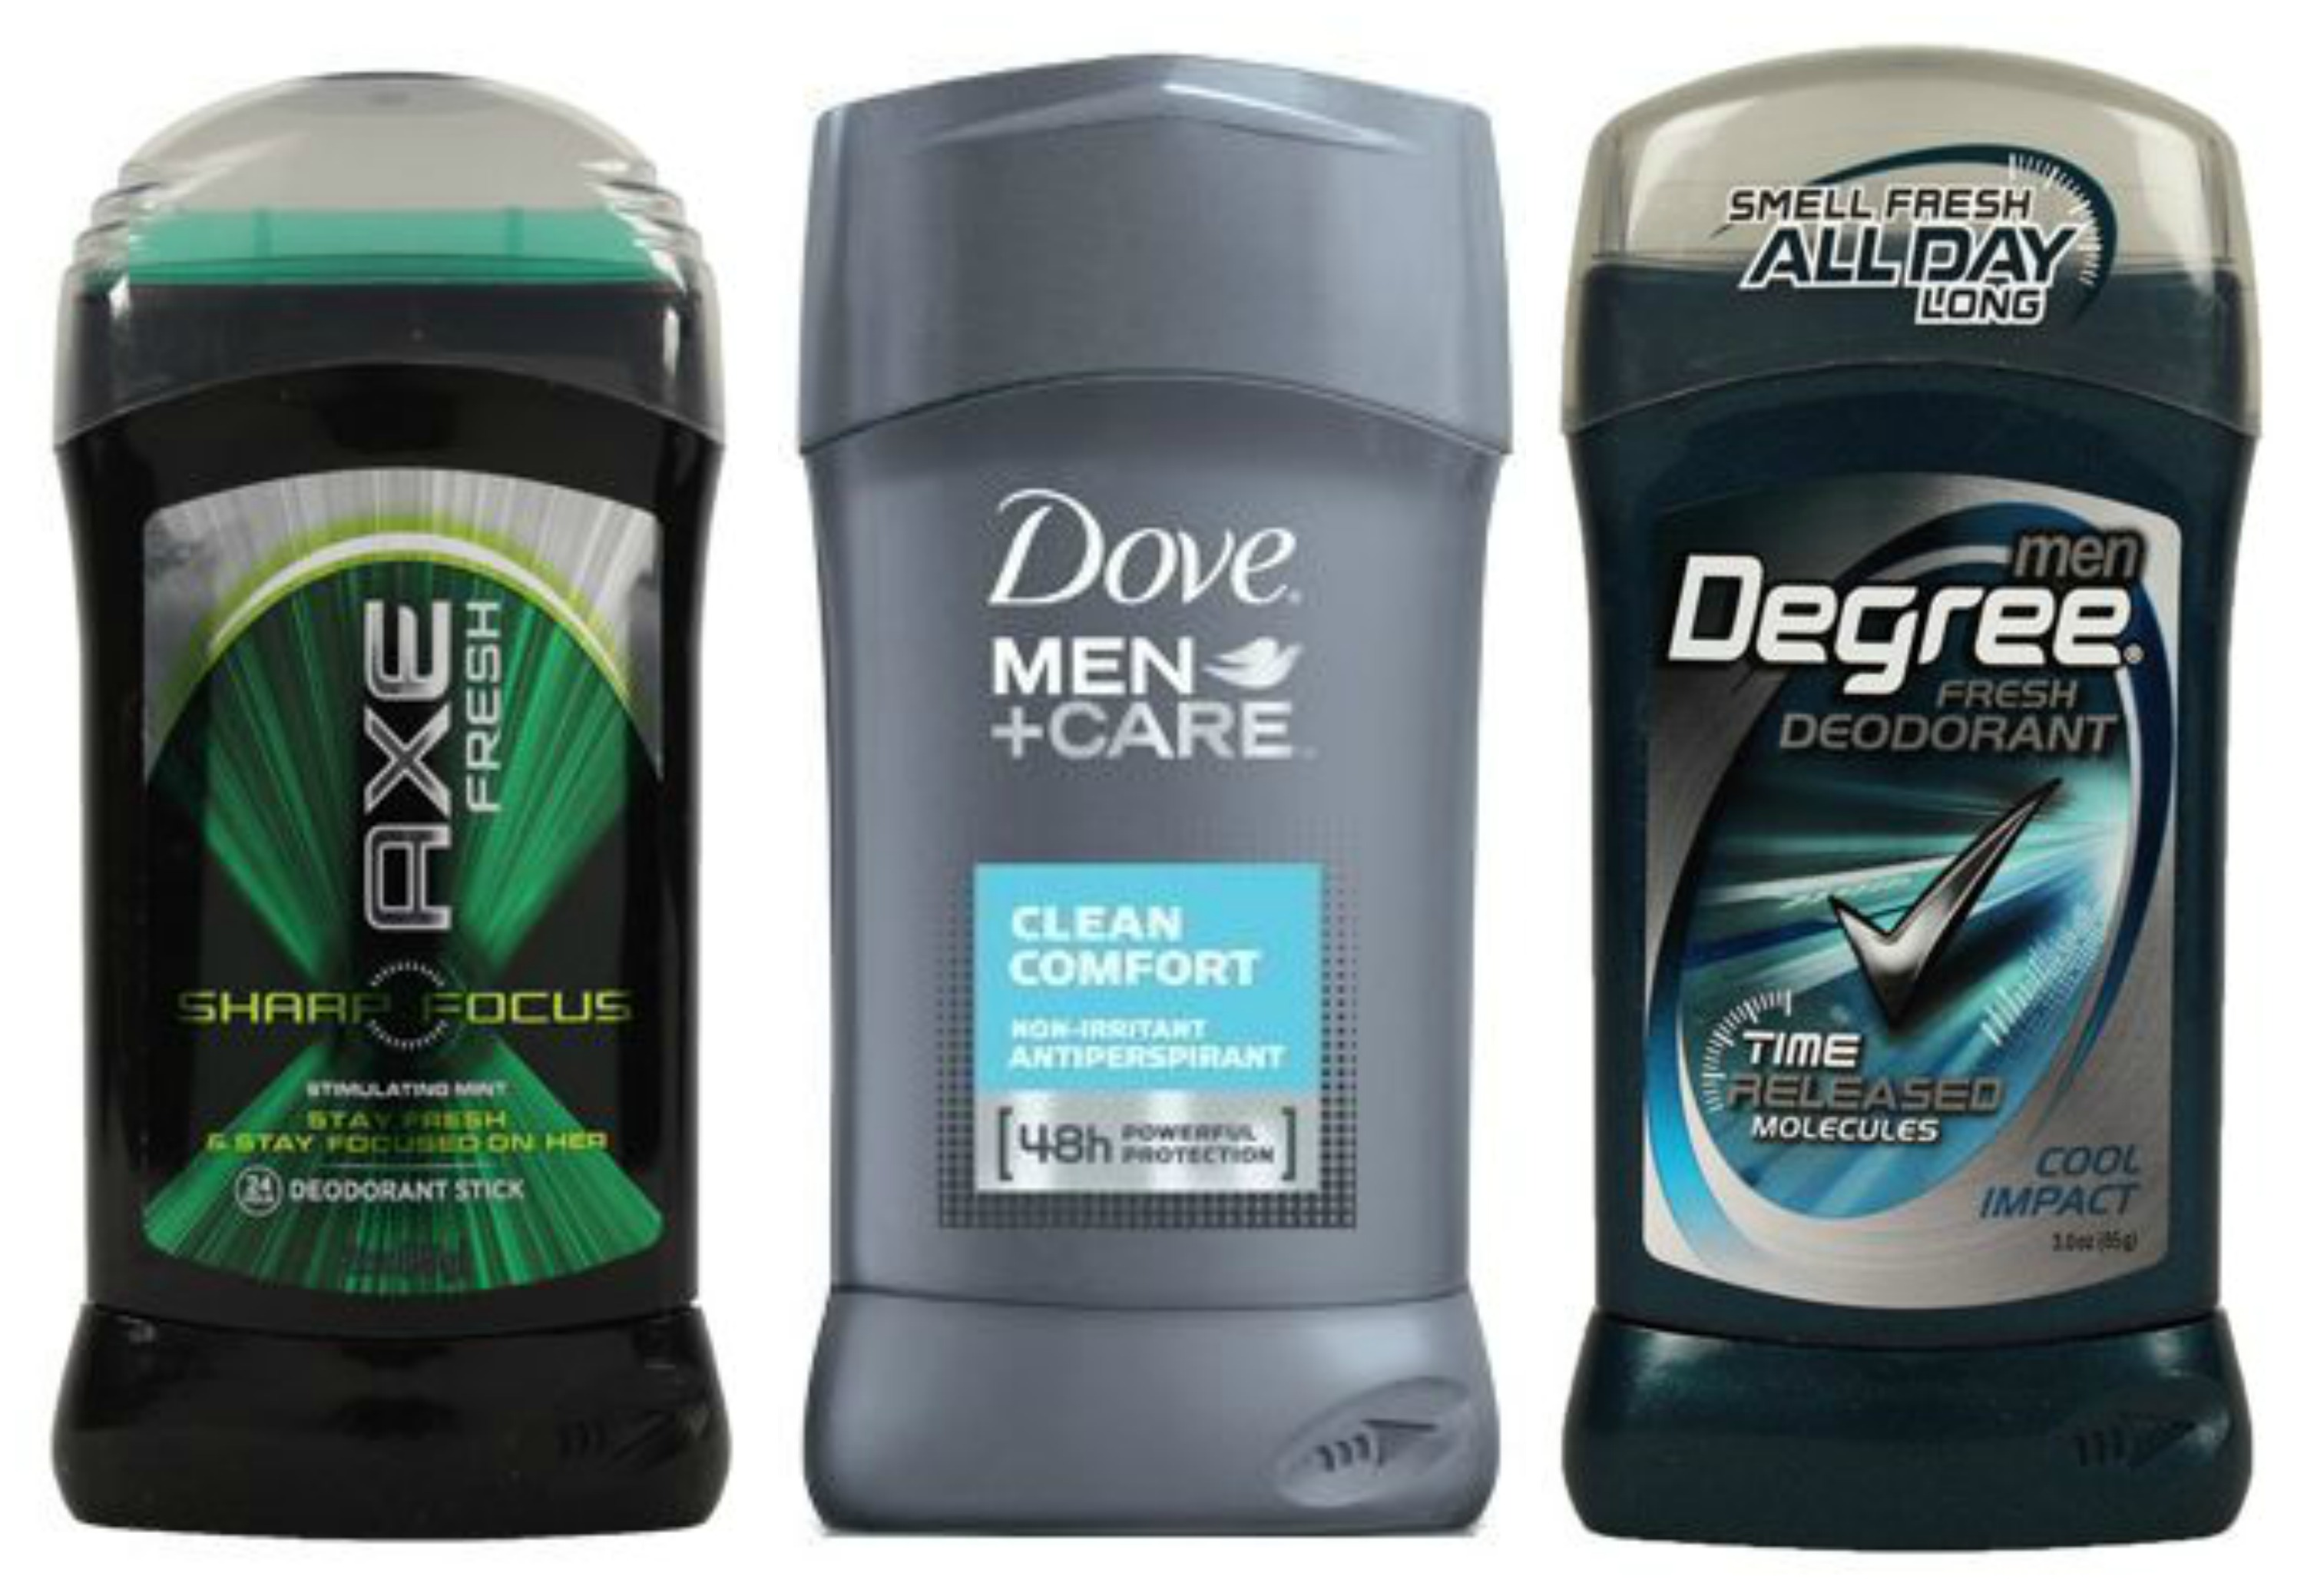 Axe, Dove & Degree Deodorant As Low As $0.33 Each